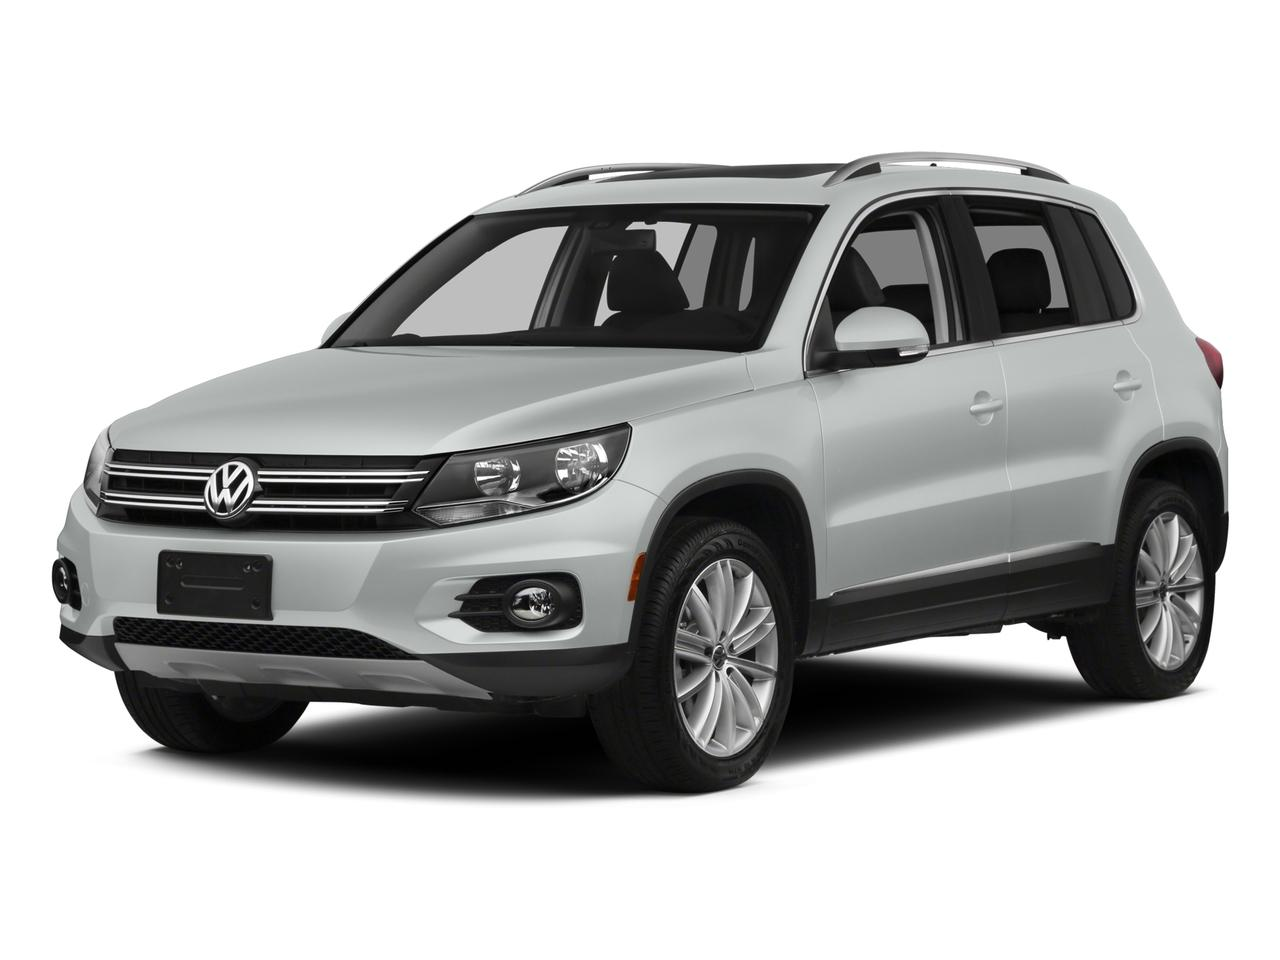 2015 Volkswagen Tiguan Vehicle Photo in Houston, TX 77546